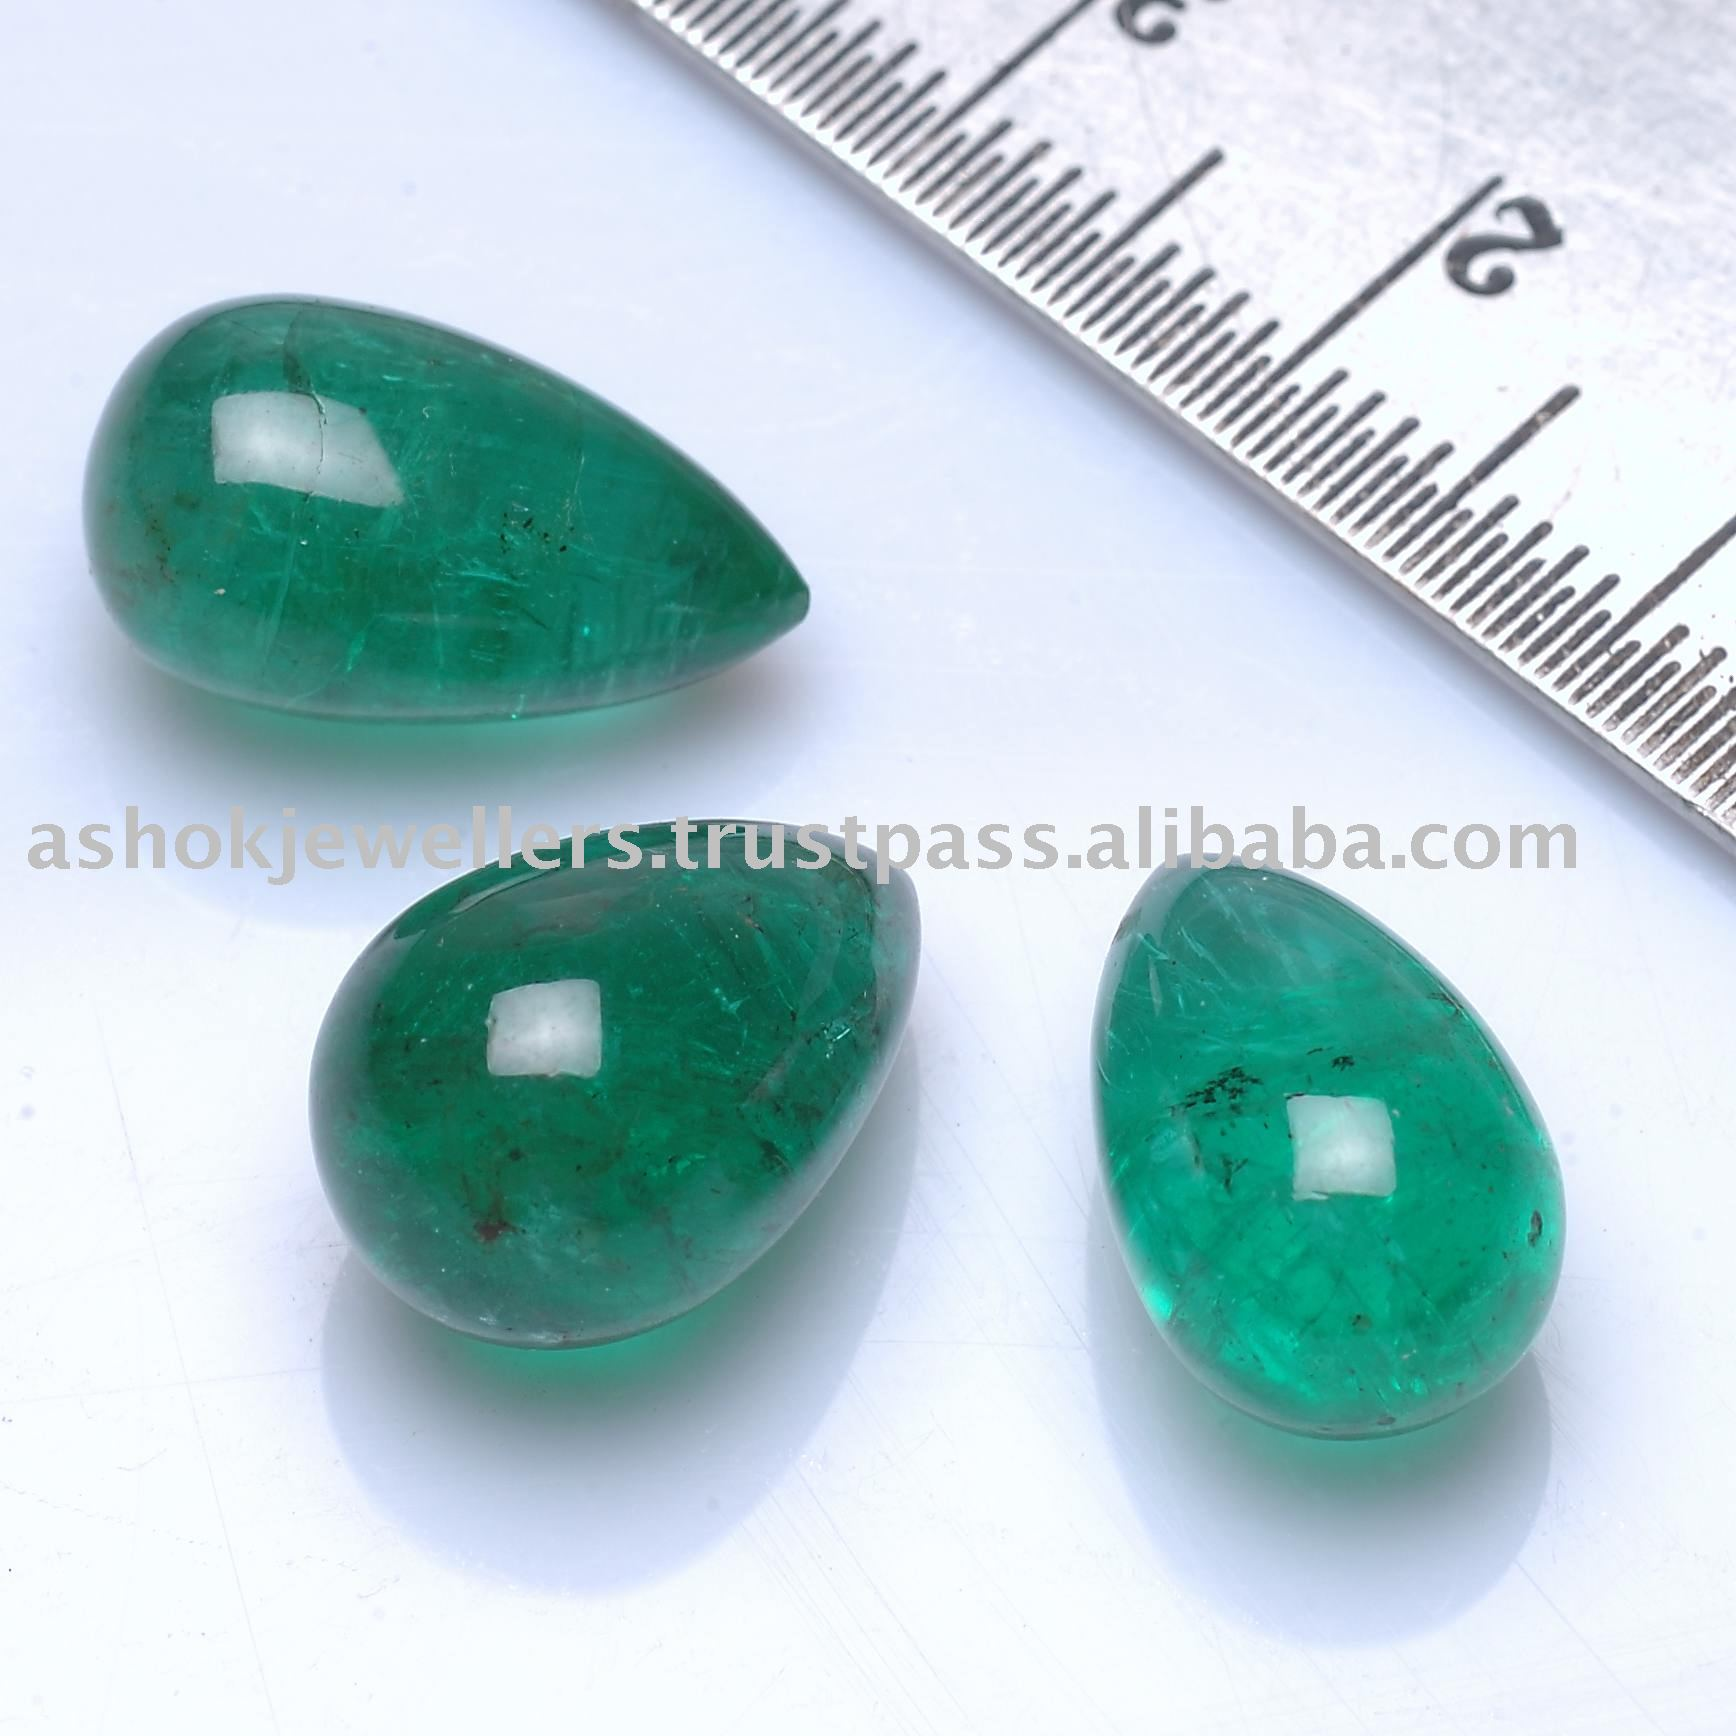 international for gems jade gemstones treated rings article gem with fei yellow cui emerald best heat